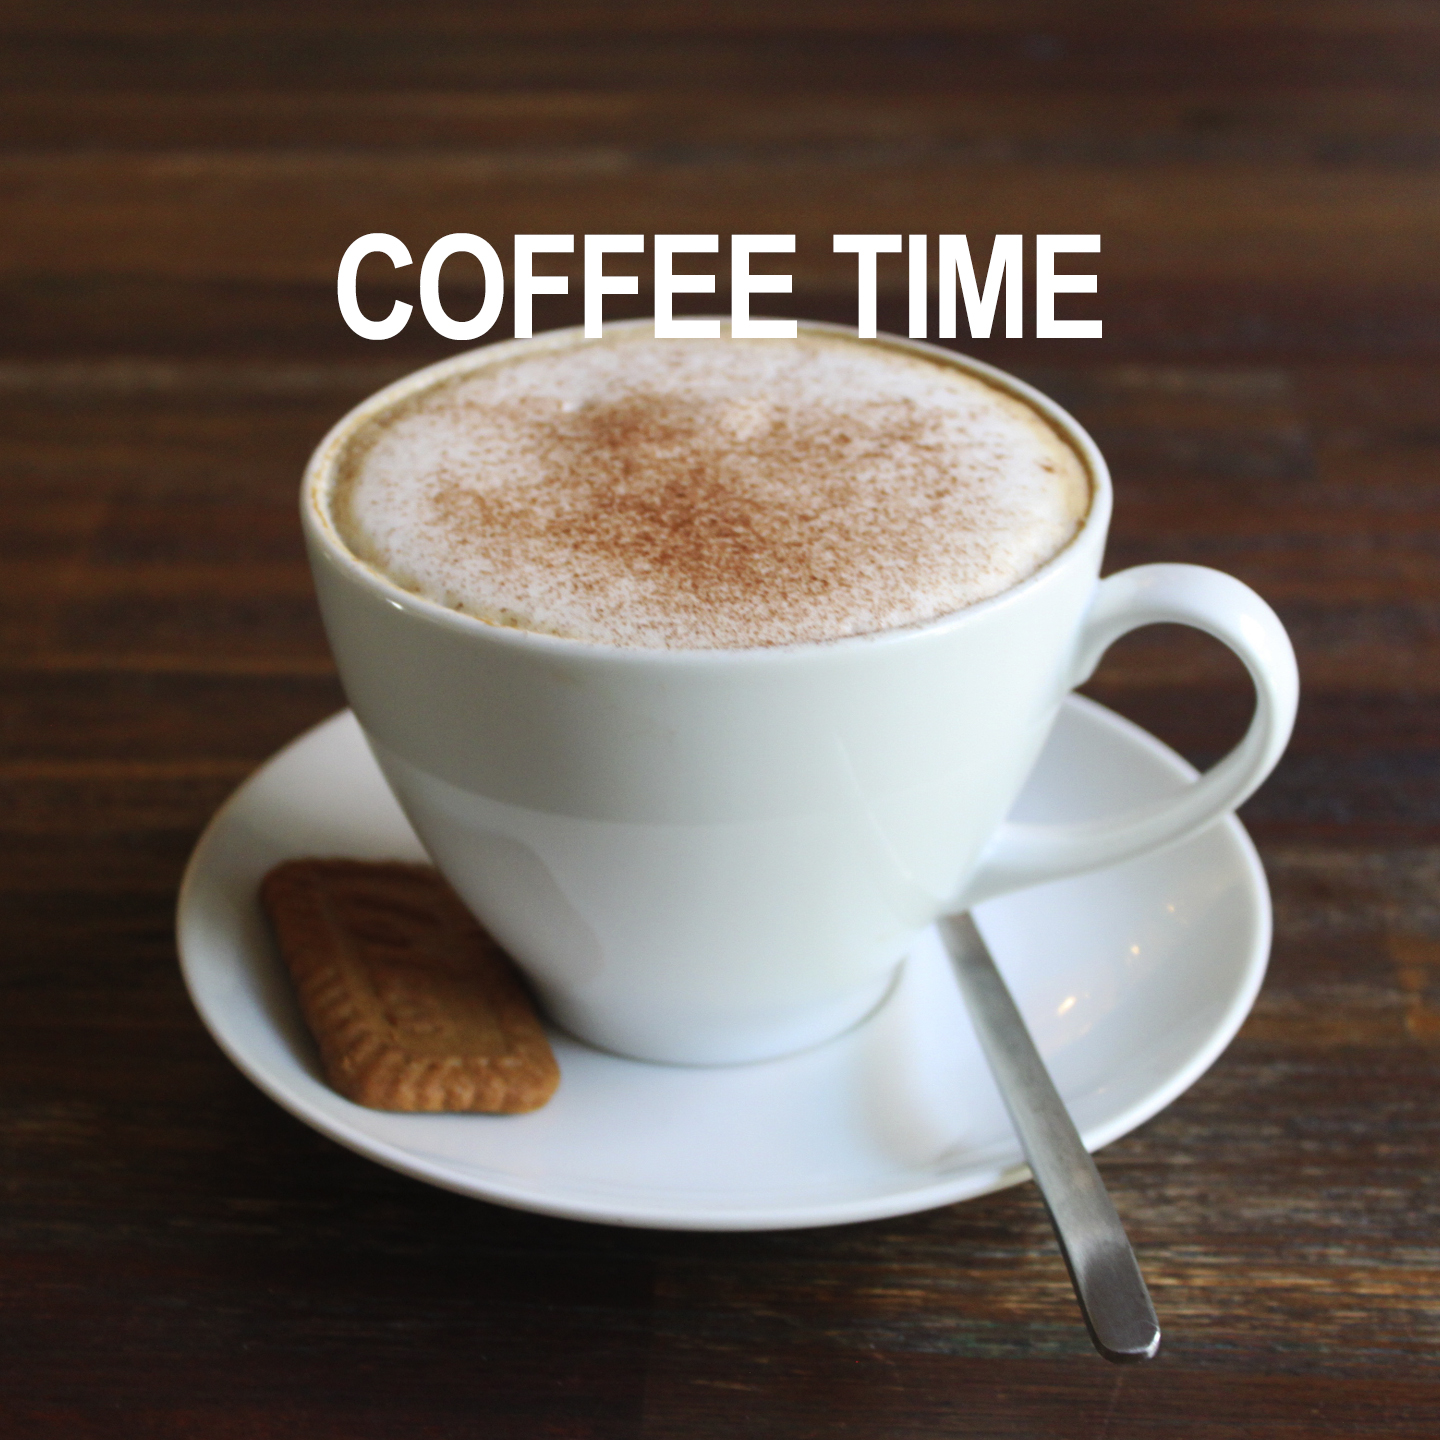 https://www.ultimate-house-records.com/wp-content/uploads/2020/09/playlist_UD-Coffe_Time.jpg